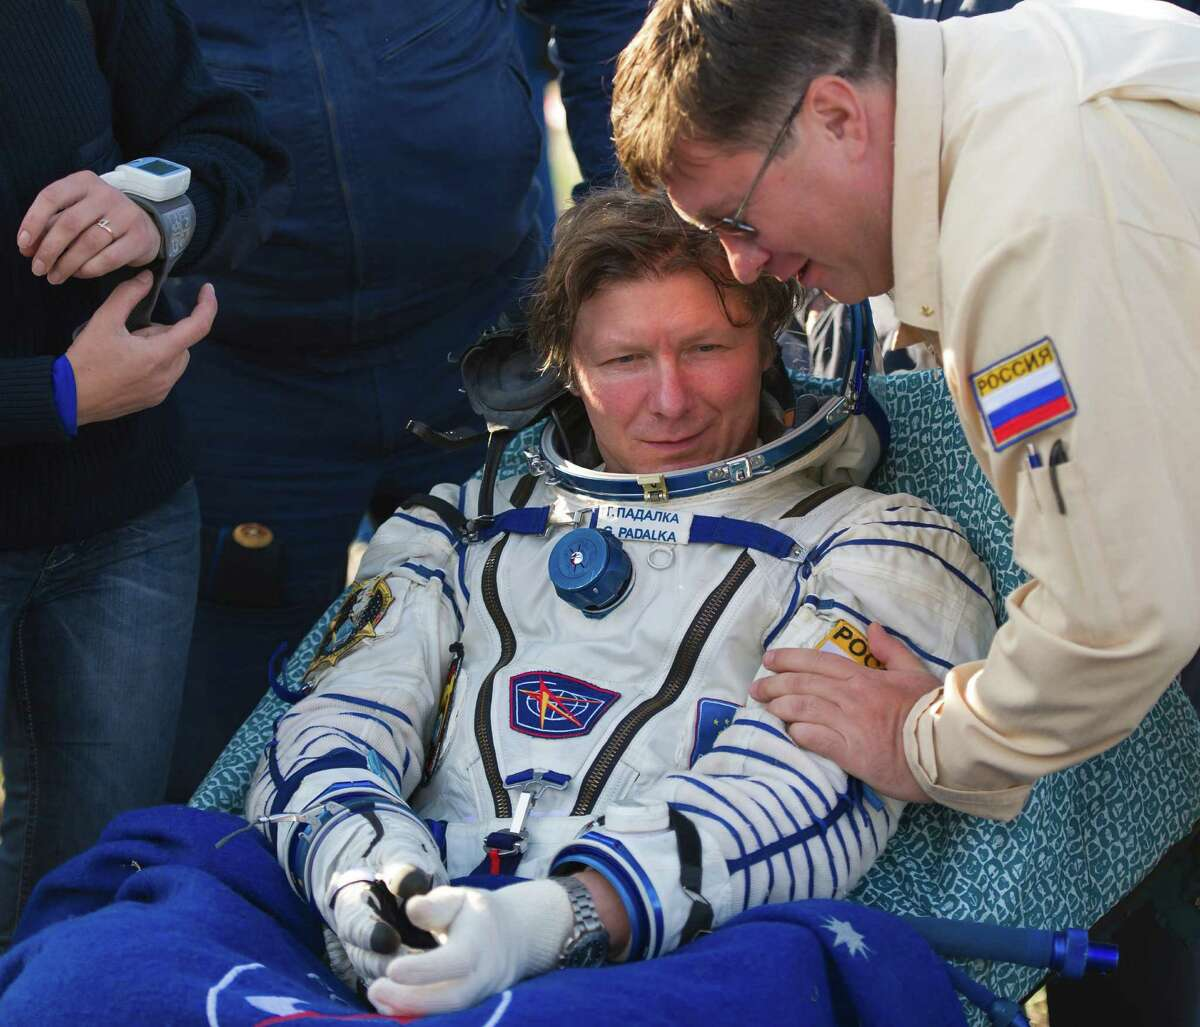 Expedition 32 commander Gennady Padalka rests outside the Soyuz TMA-04M capsule just minutes after he and Expedition 32 NASA flight engineer Joe Acaba and Russian flight engineer Sergei Revin landed in a remote area outside of the town of Arkalyk, Kazakhstan, on Monday, Sept. 17, 2012. Padalka, Acaba and Revin are returning from five months onboard the International Space Station where they served as members of the Expedition 31 and 32 crews. (AP Photo/NASA, Carla Cioffi) MANDATORY CREDIT